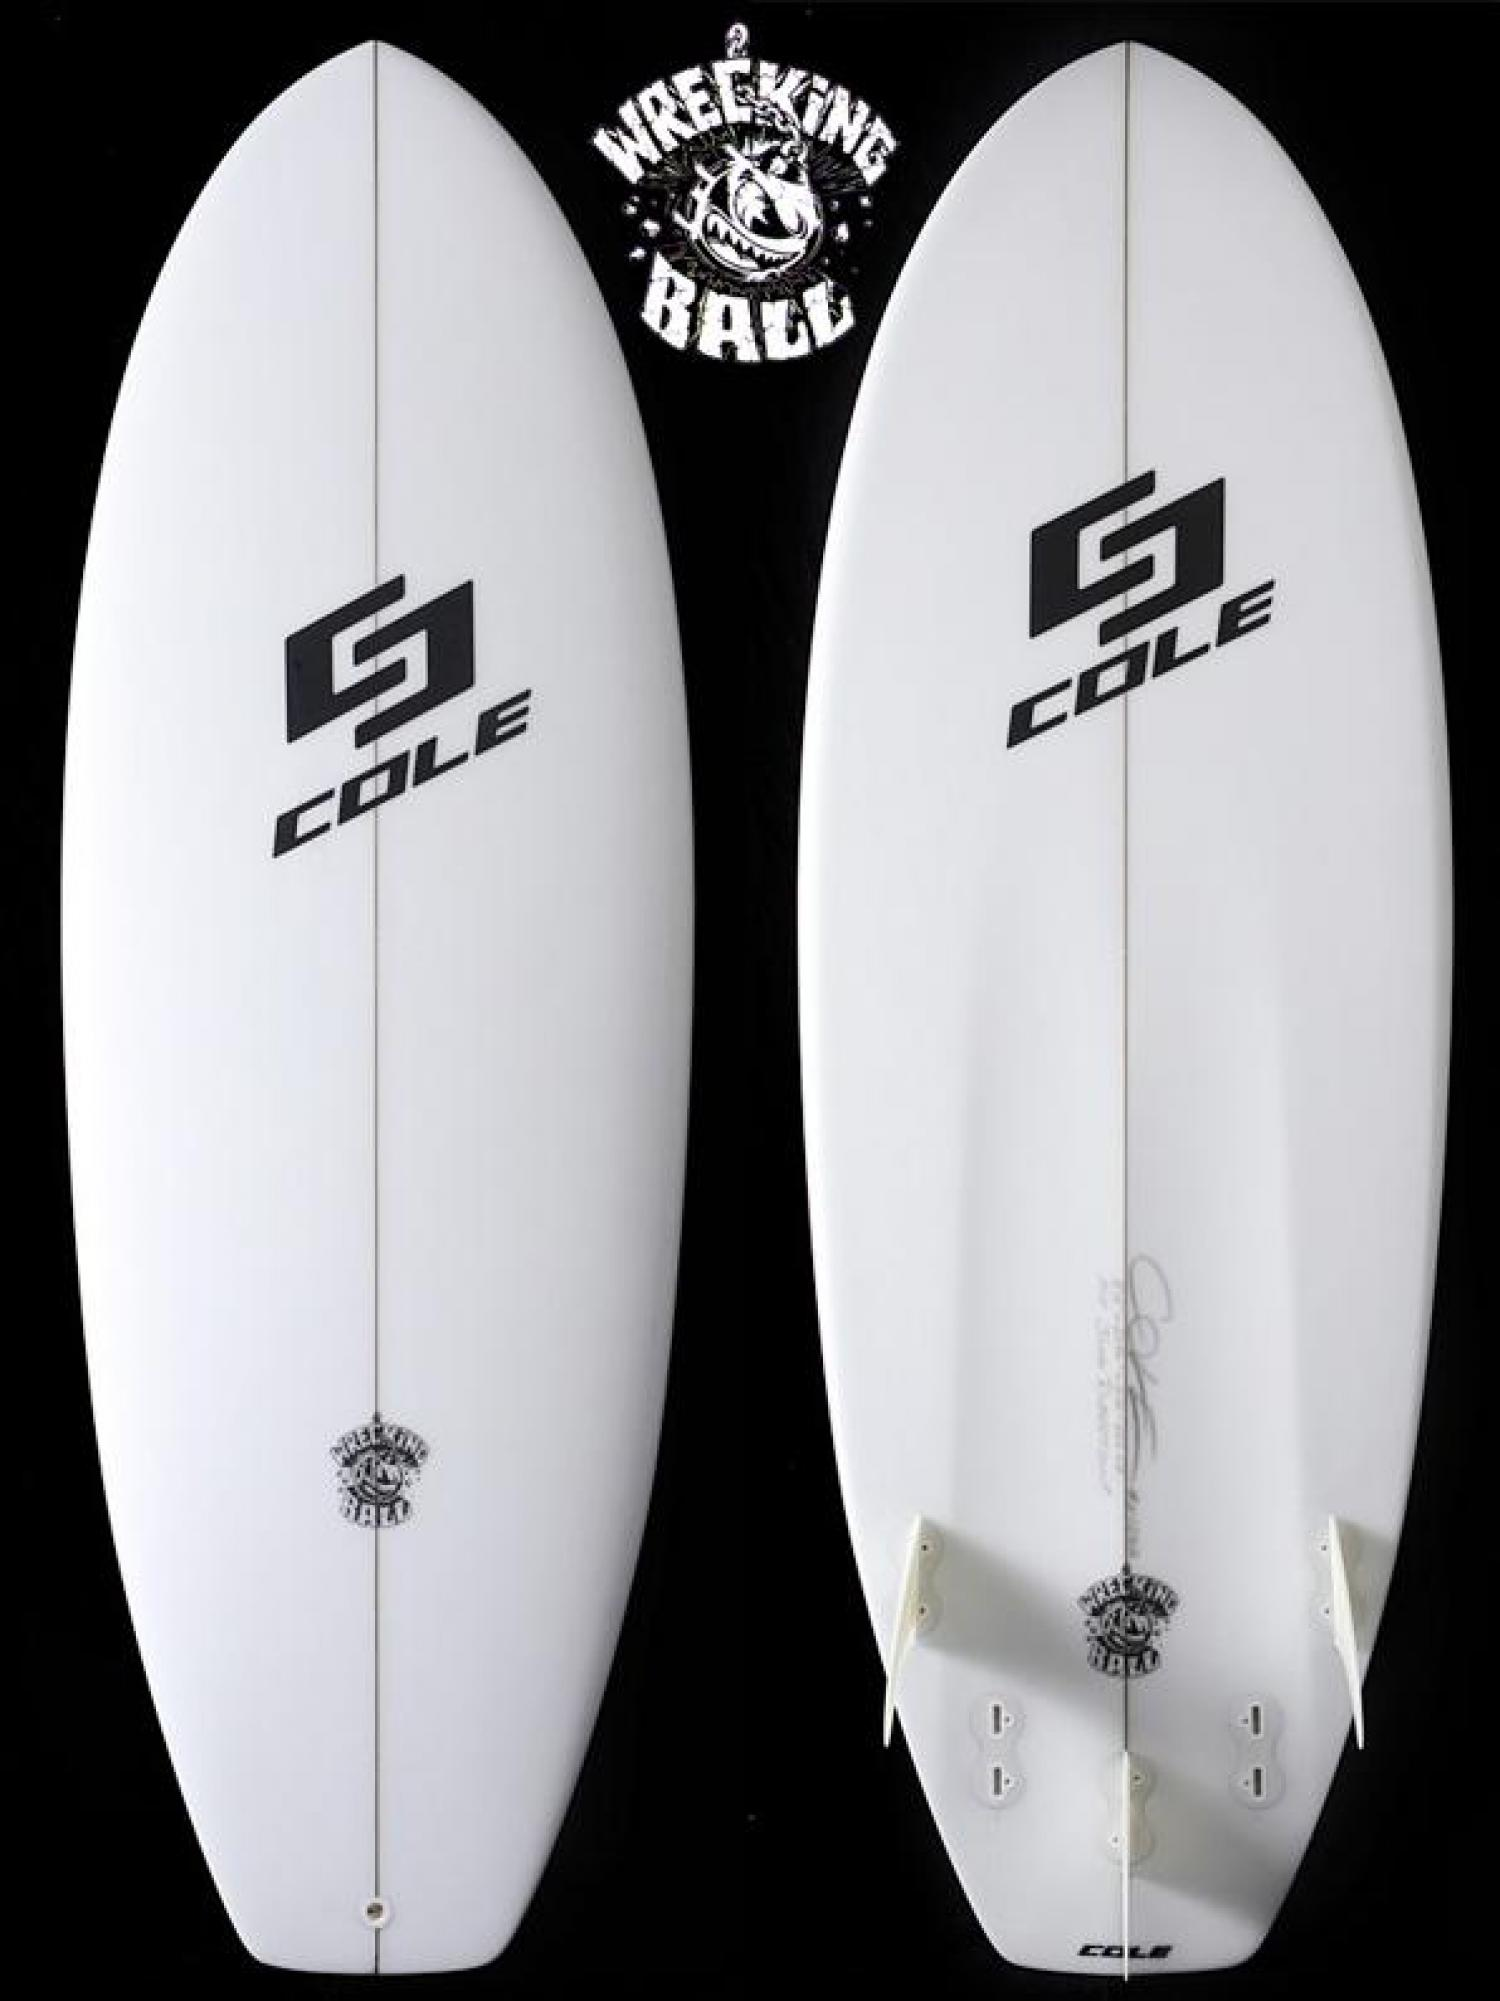 Wrecking Ball COLE SURFBOARDS  Order accepted